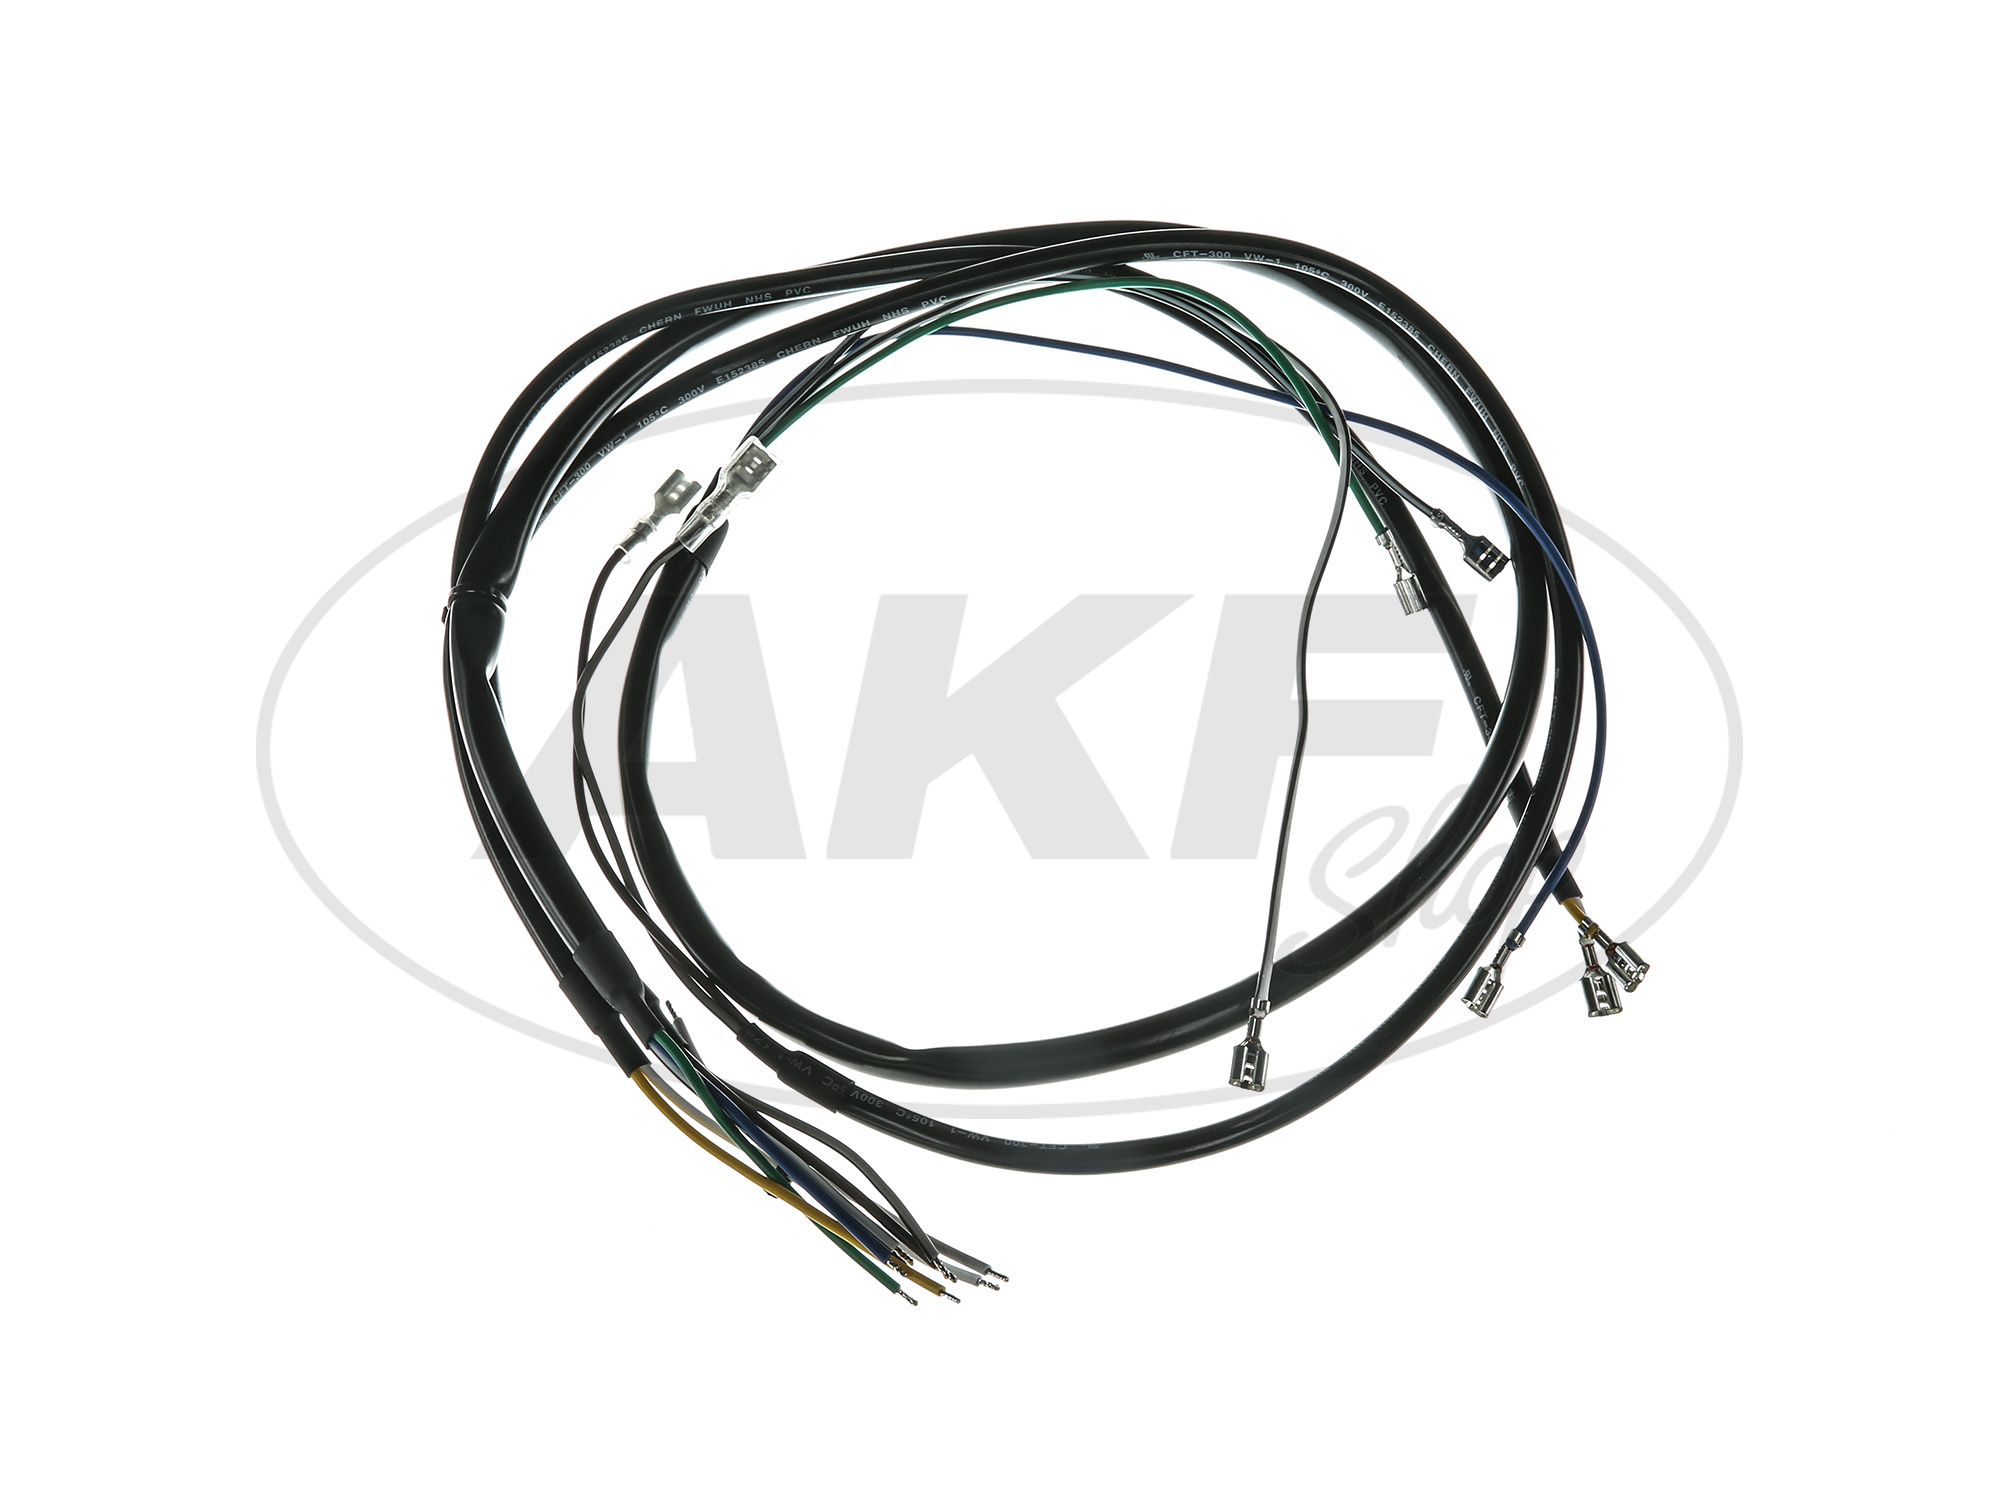 Wiring Harness Basic Equipment Without Diagram For Simson Television Image 5 S50